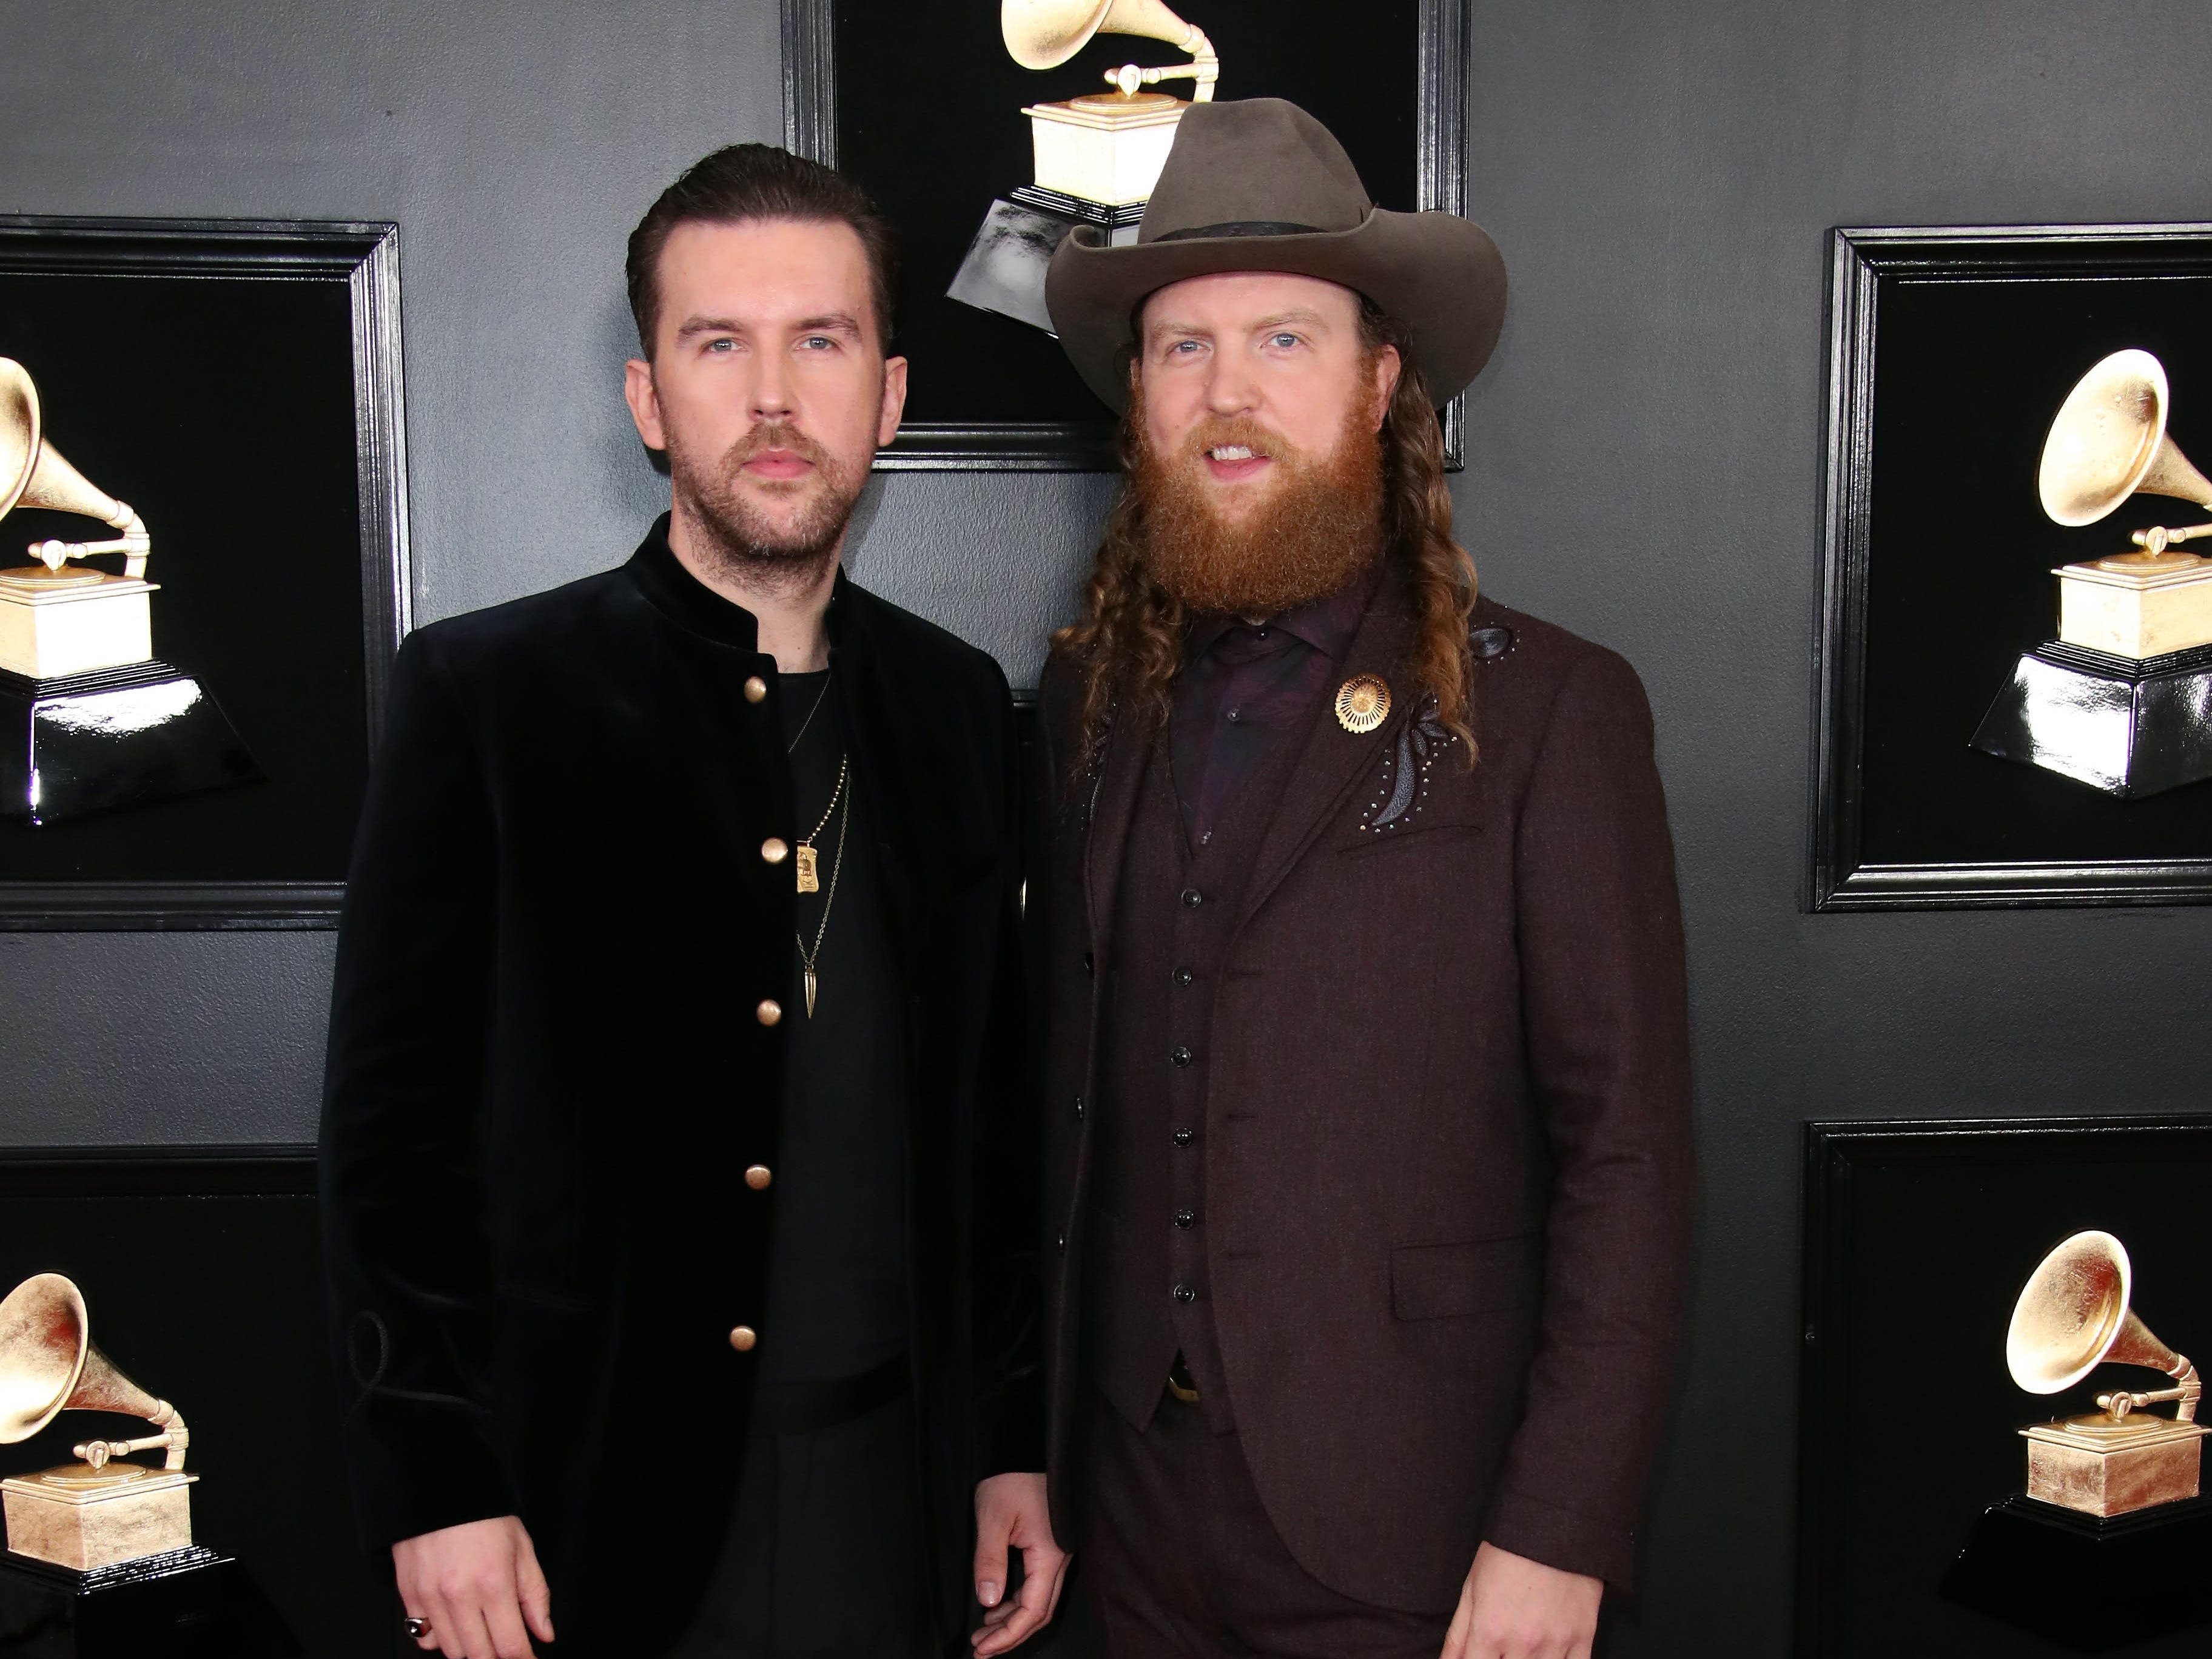 The Brothers Osborne attend the 61st Annual GRAMMY Awards on Feb. 10, 2019 at STAPLES Center in Los Angeles, Calif.